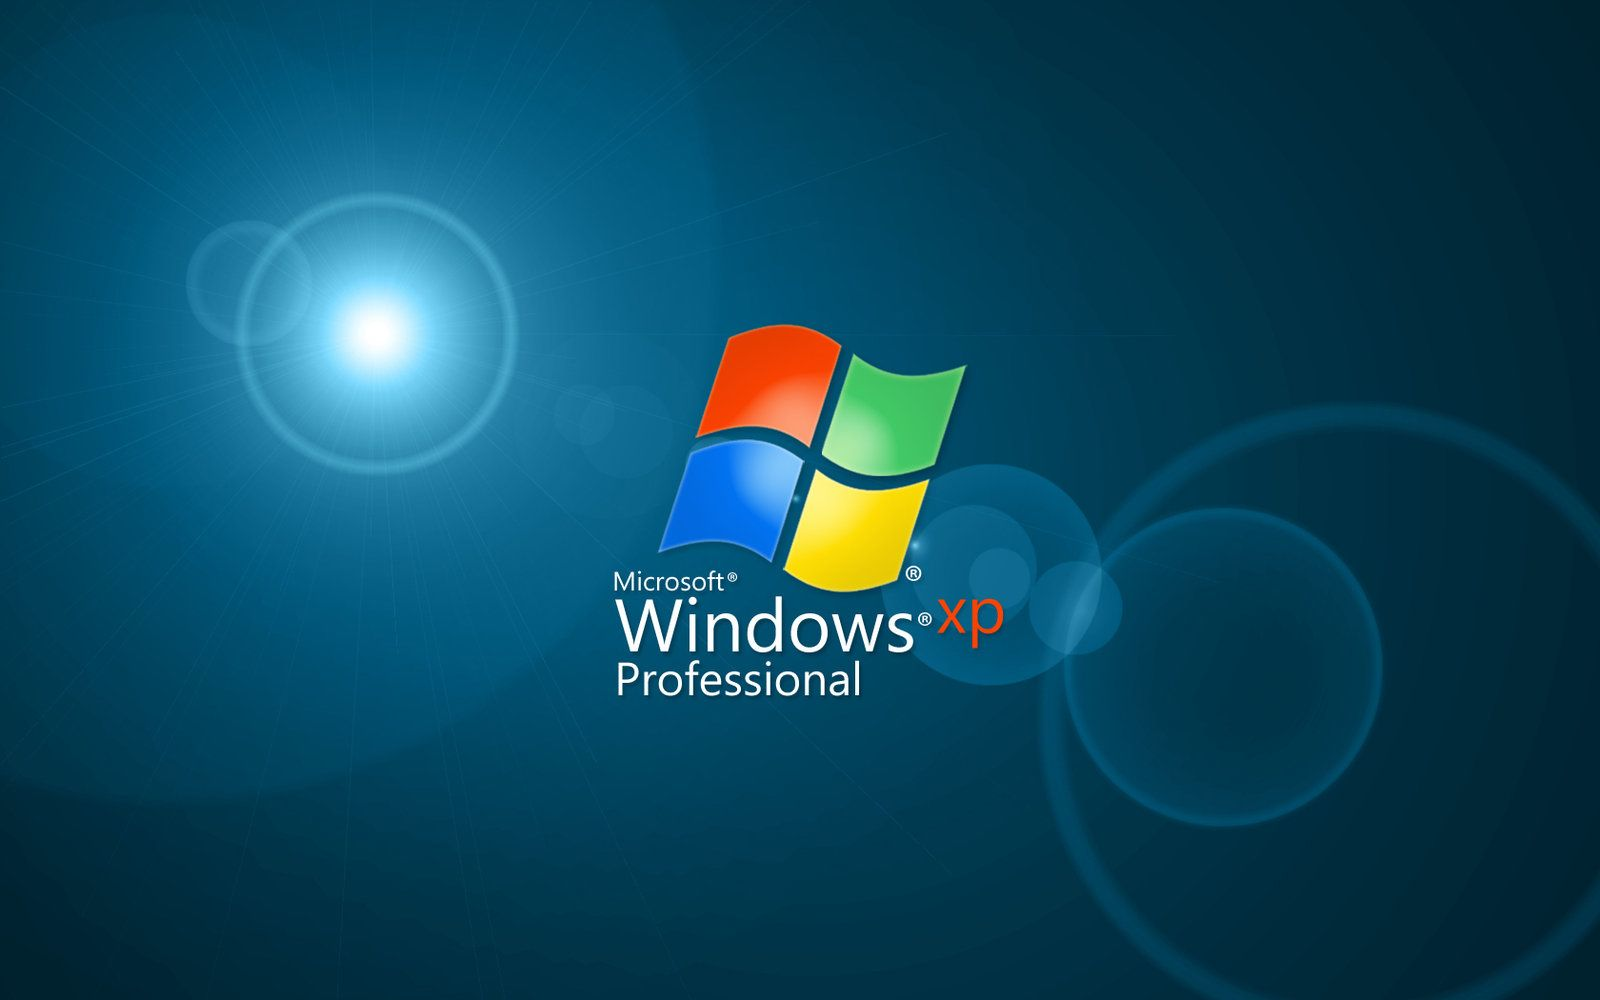 Windows XP Professional HD desktop wallpaper Fullscreen